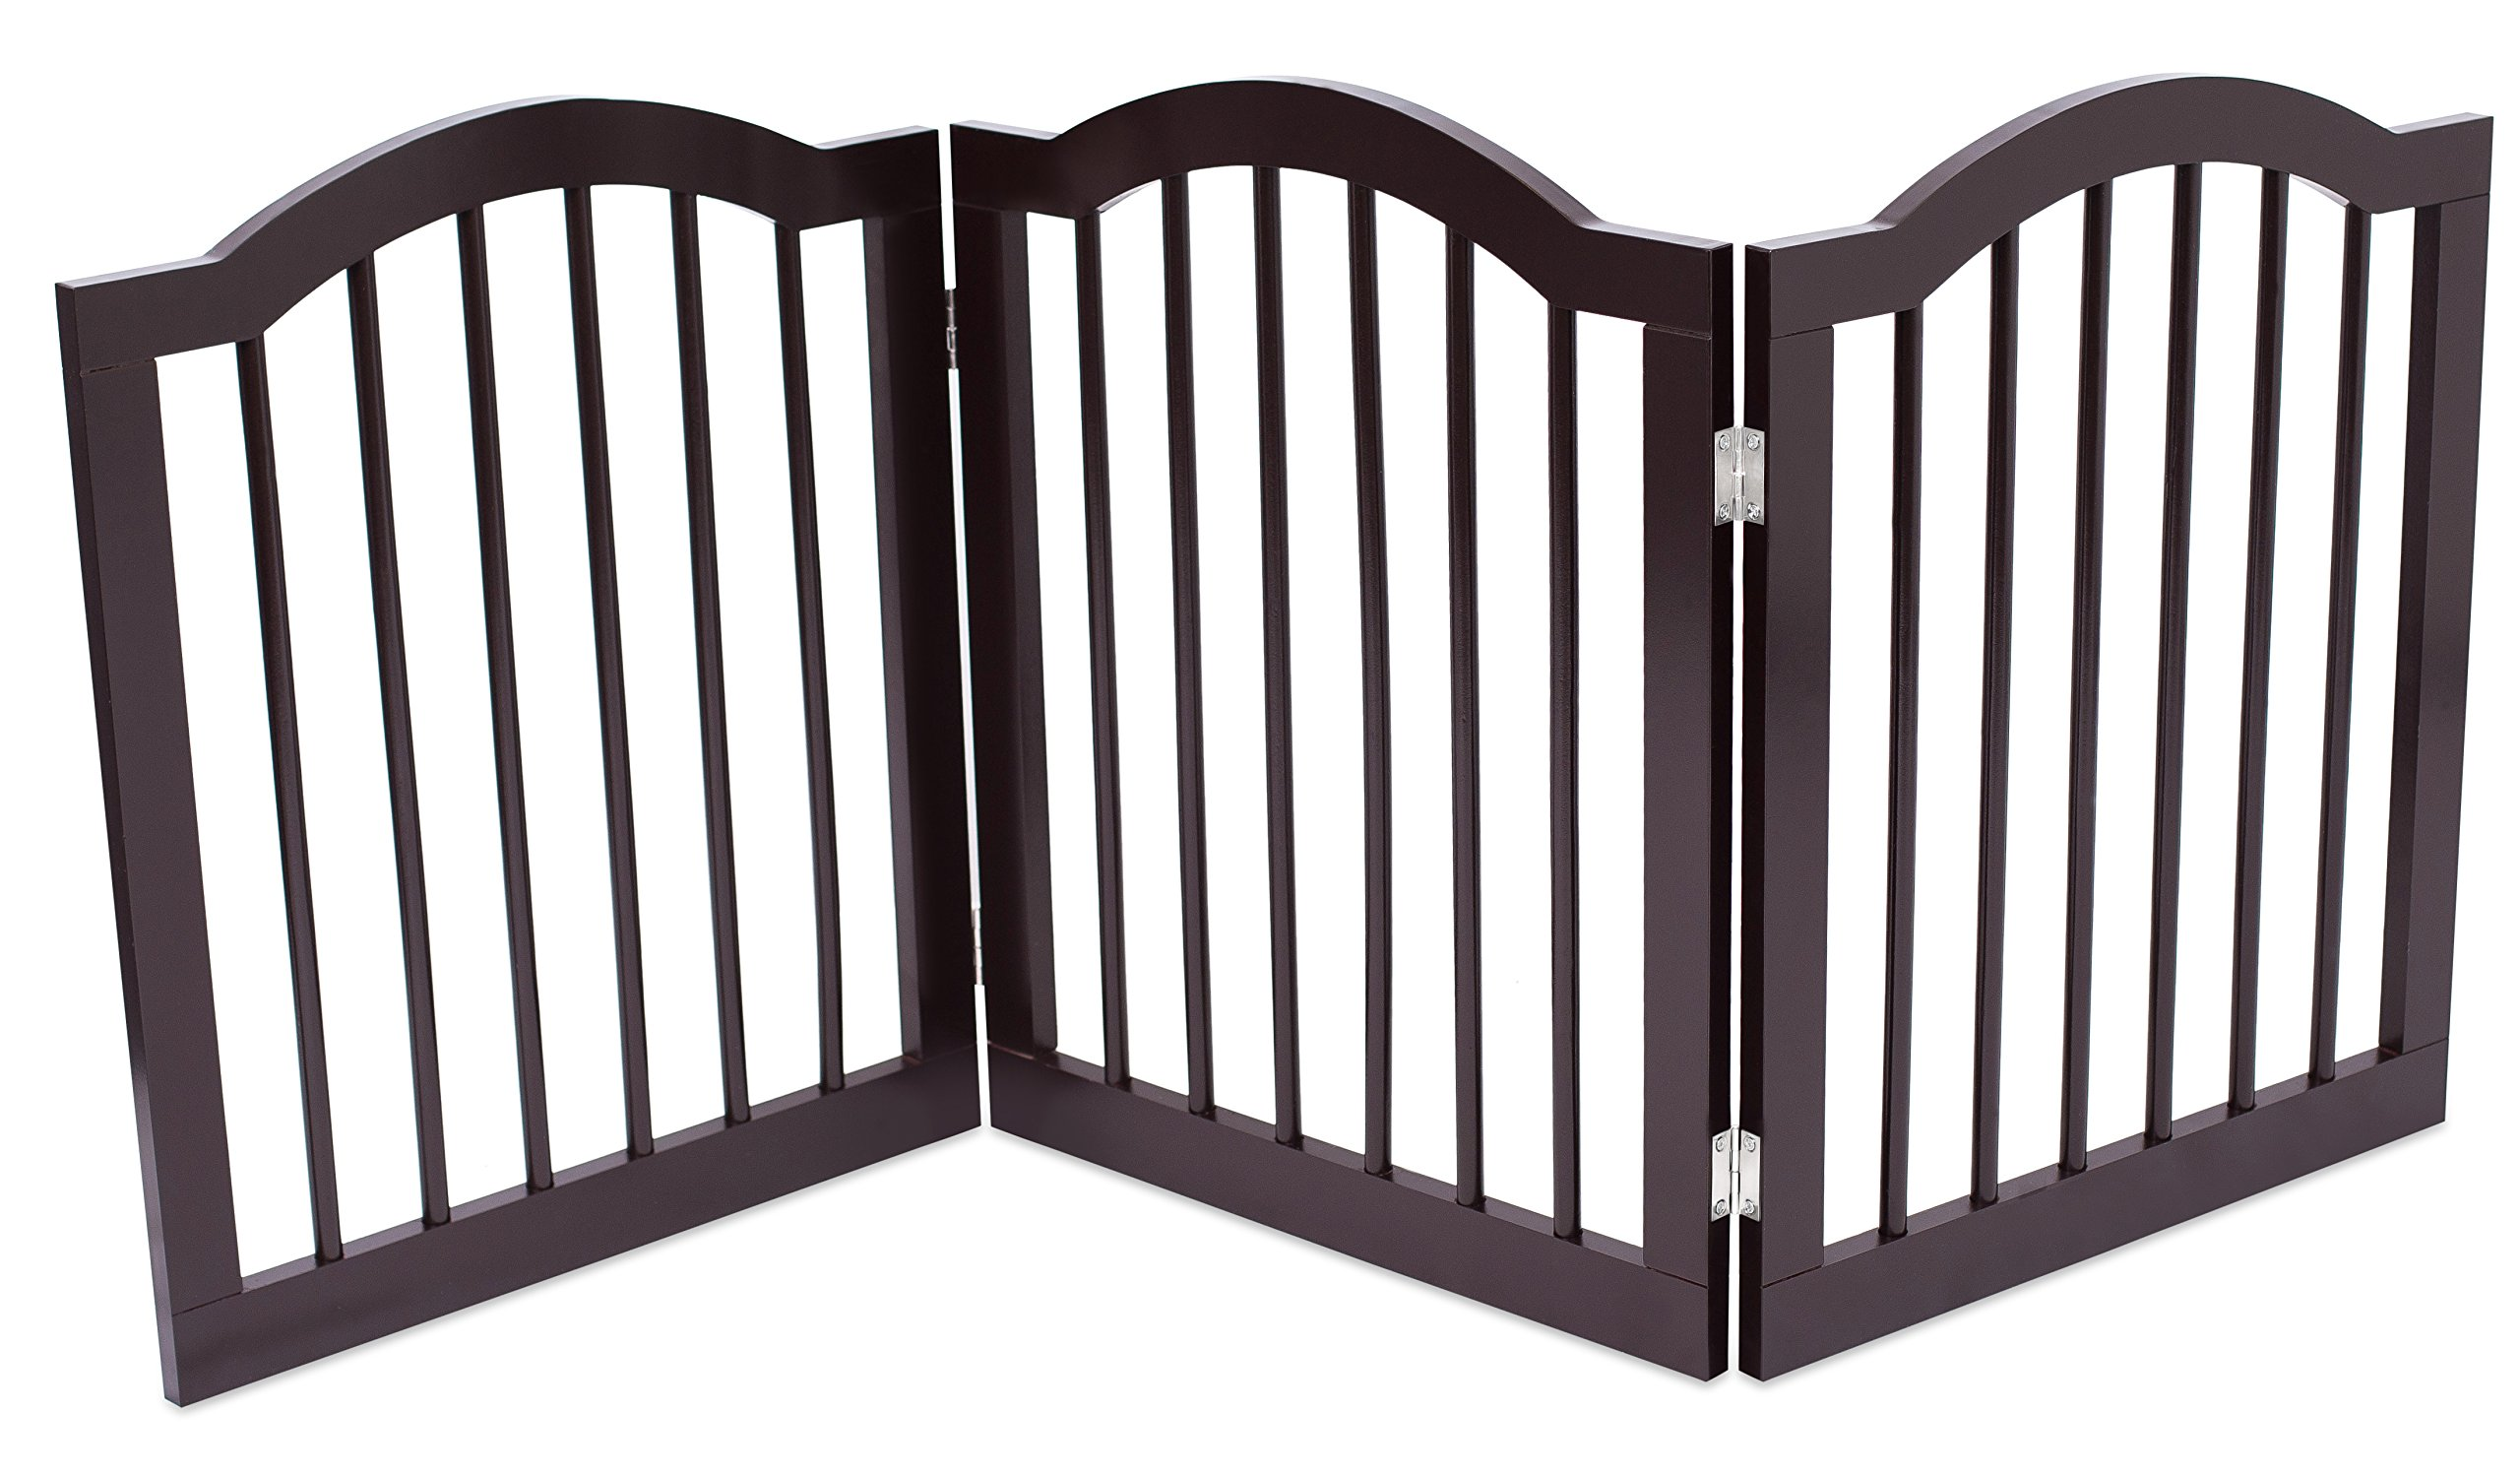 Internet's Best Pet Gate with Arched Top   3 Panel   24 Inch Step Over Fence   Free Standing Folding Z Shape Indoor Doorway Hall Stairs Dog Puppy Gate   Fully Assembled   Espresso   MDF